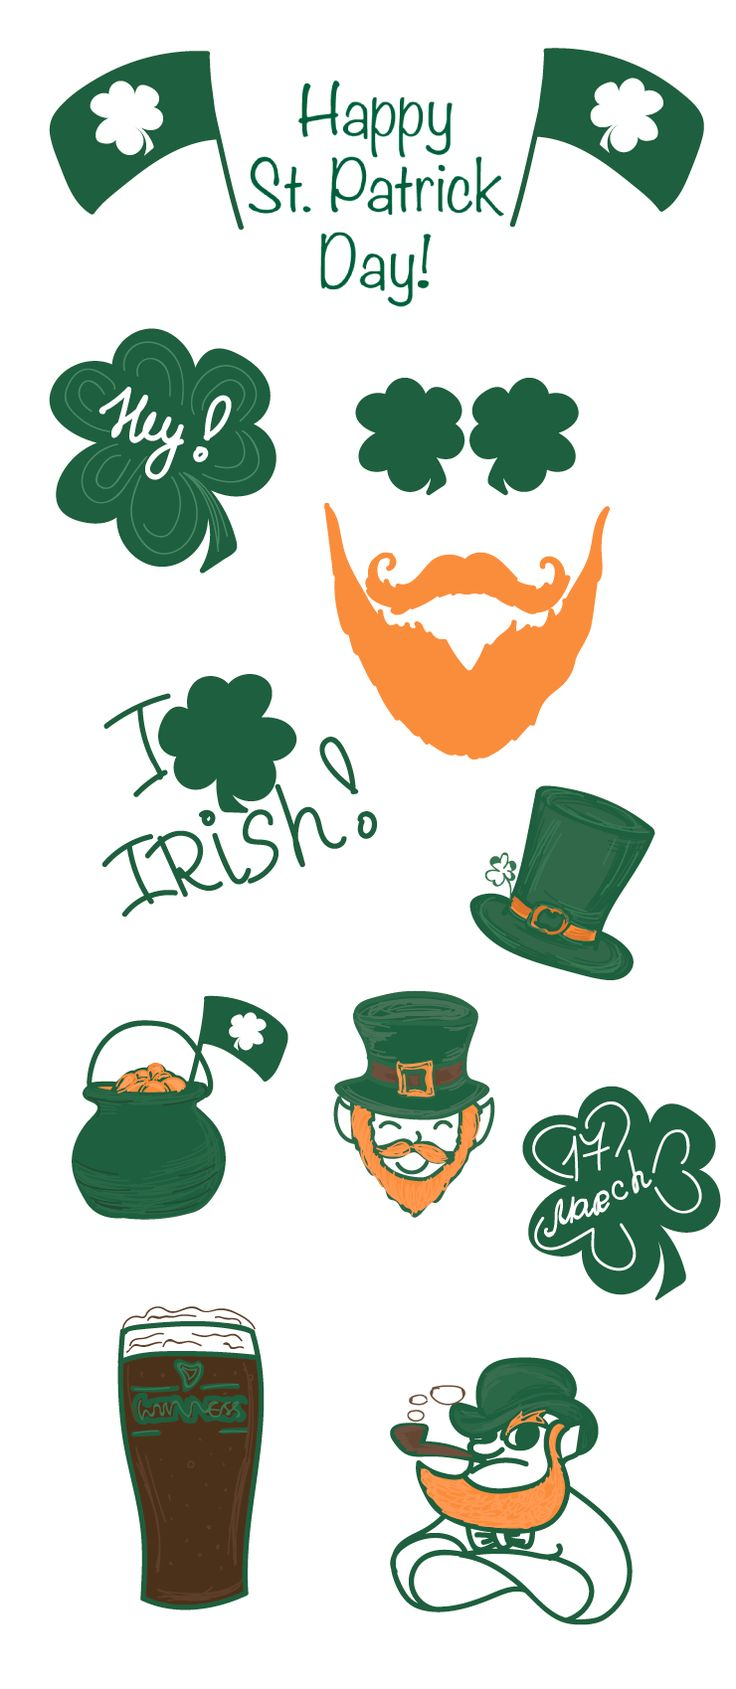 On the St. Patrick's Day's eve we decided to please you with a new set of stickers!  Red bearded men, beer (whiskey?) and of course the main symbol of the holiday (by the way, it has already become international) - clover!!!  #ItsStPatricksDay #Dublin #irish #celebration #traditional #Irish #holiday #beer #clover #trefoil #Celtic #fourleafclover #Ireland #Patrick #shamrock #StPatrick #Trifolium  #green #Guinness #Holy #Trinity